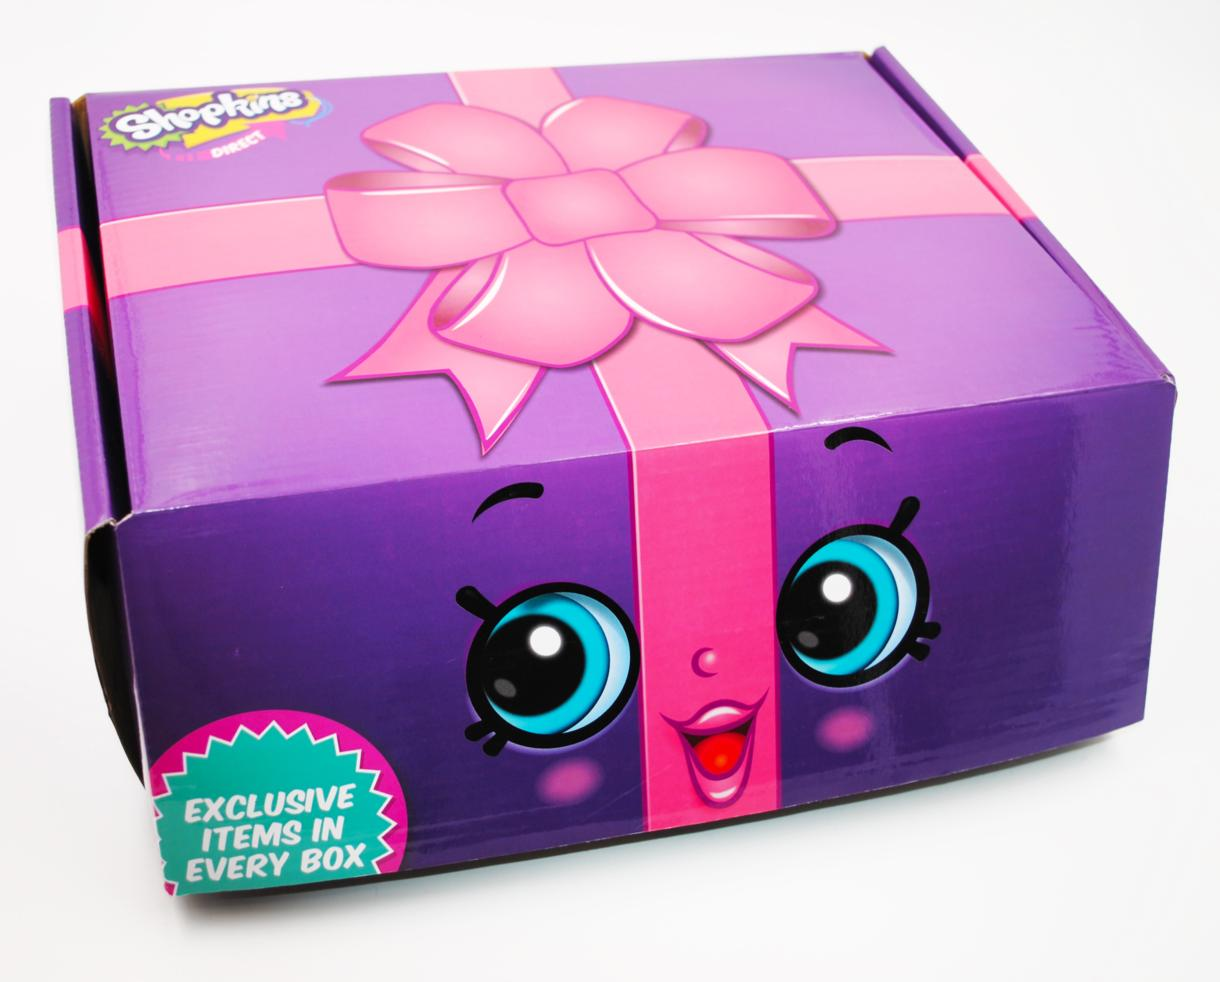 $17 for Shopkins Direct Premium Subscription Box - $70+ Worth of Exclusive Shopkins Items Not Available in Stores! (44% Off)